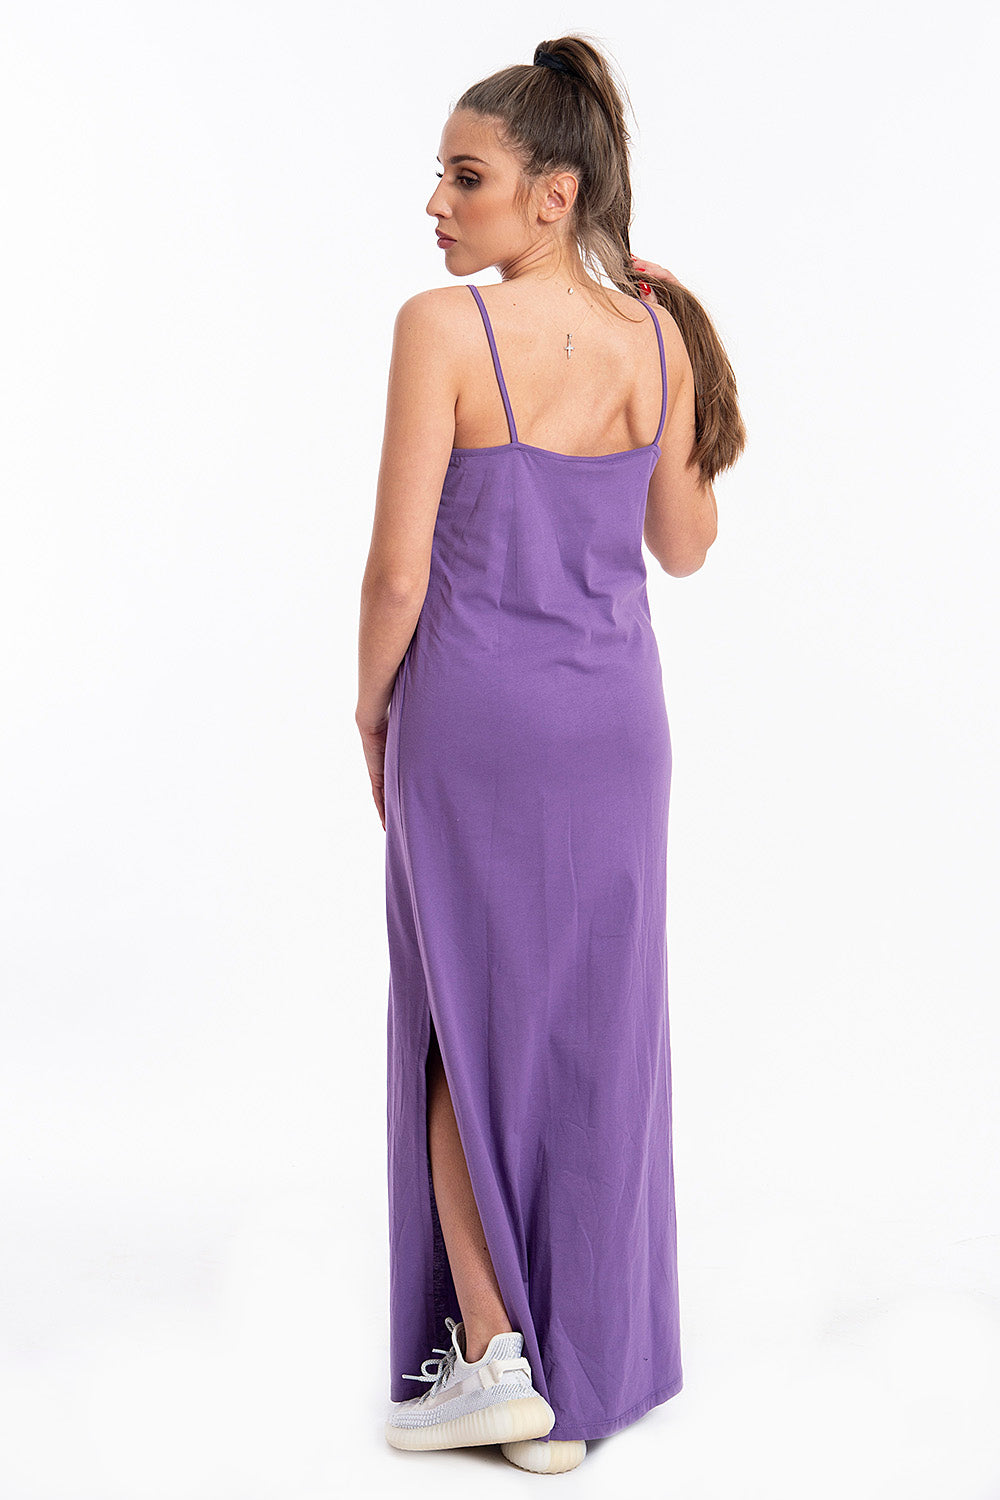 Comme des Fuckdown basic maxi dress with side split